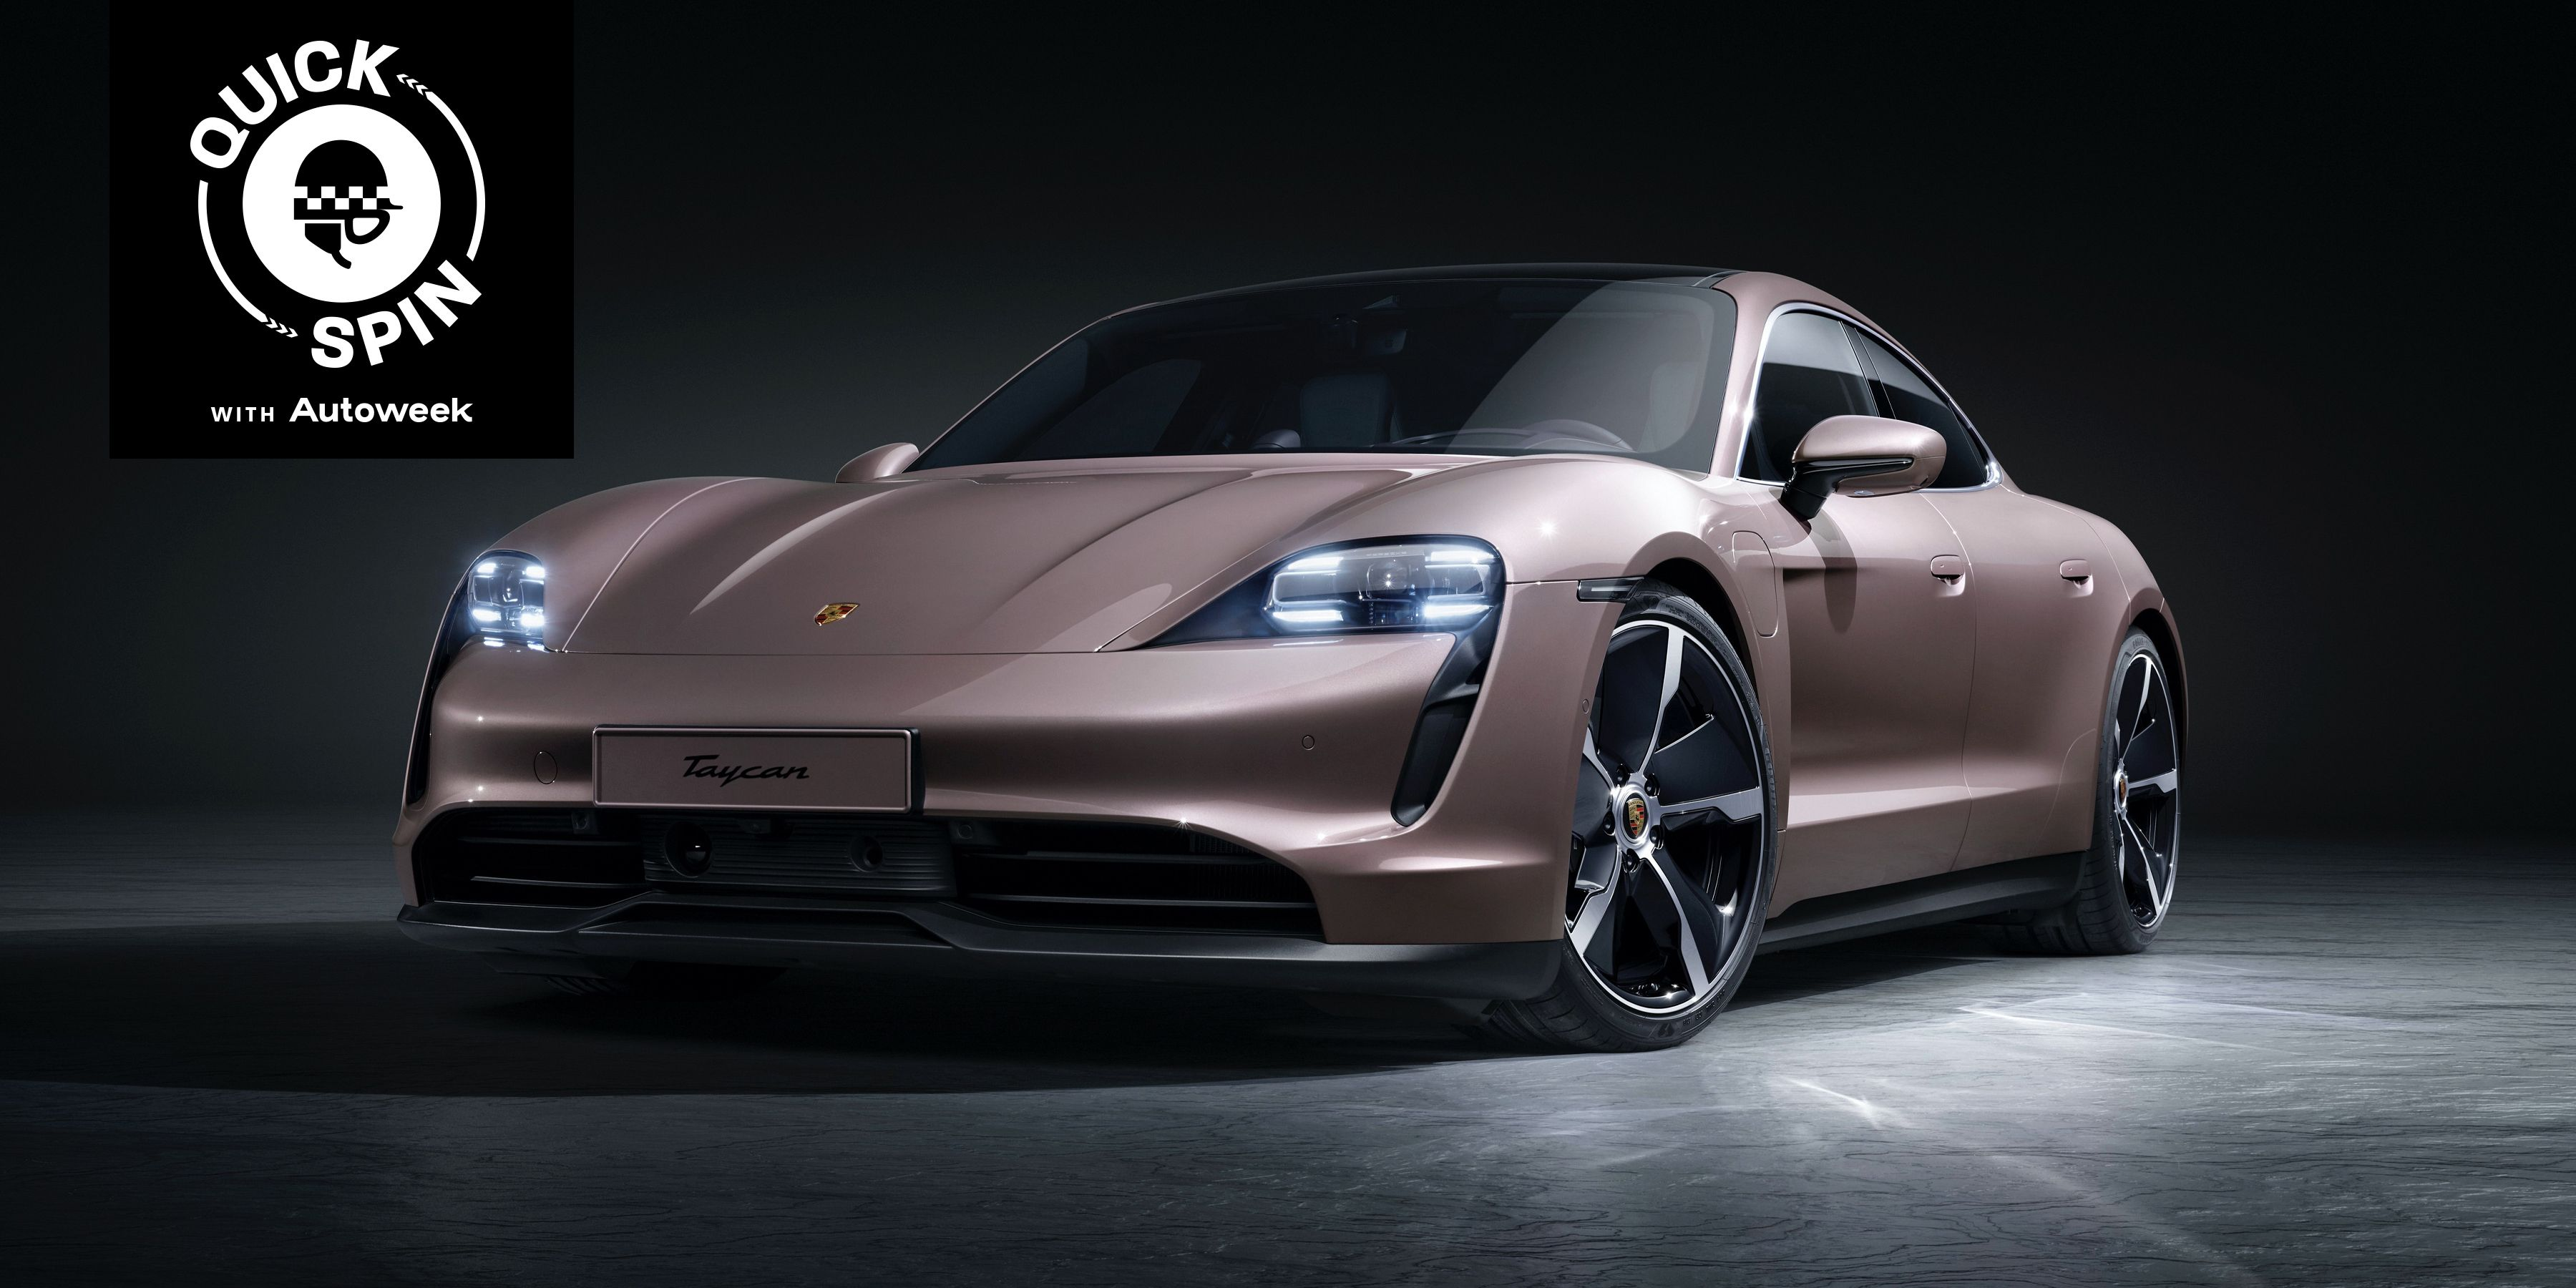 2021 Porsche Taycan Rwd Quick Spin Review